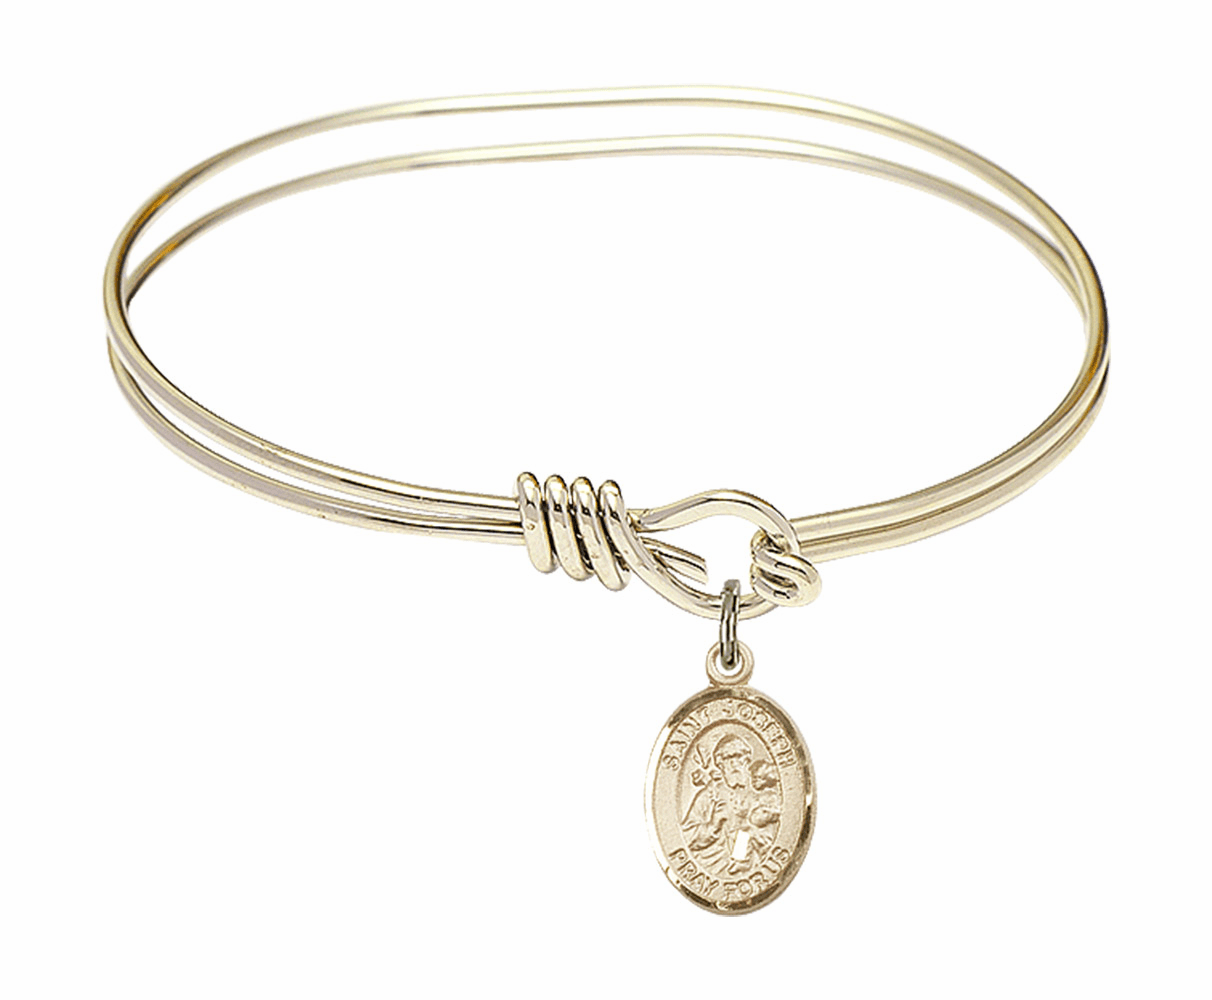 Round Loop St Joseph Bangle 14kt Gold-filled Charm Bracelet by Bliss